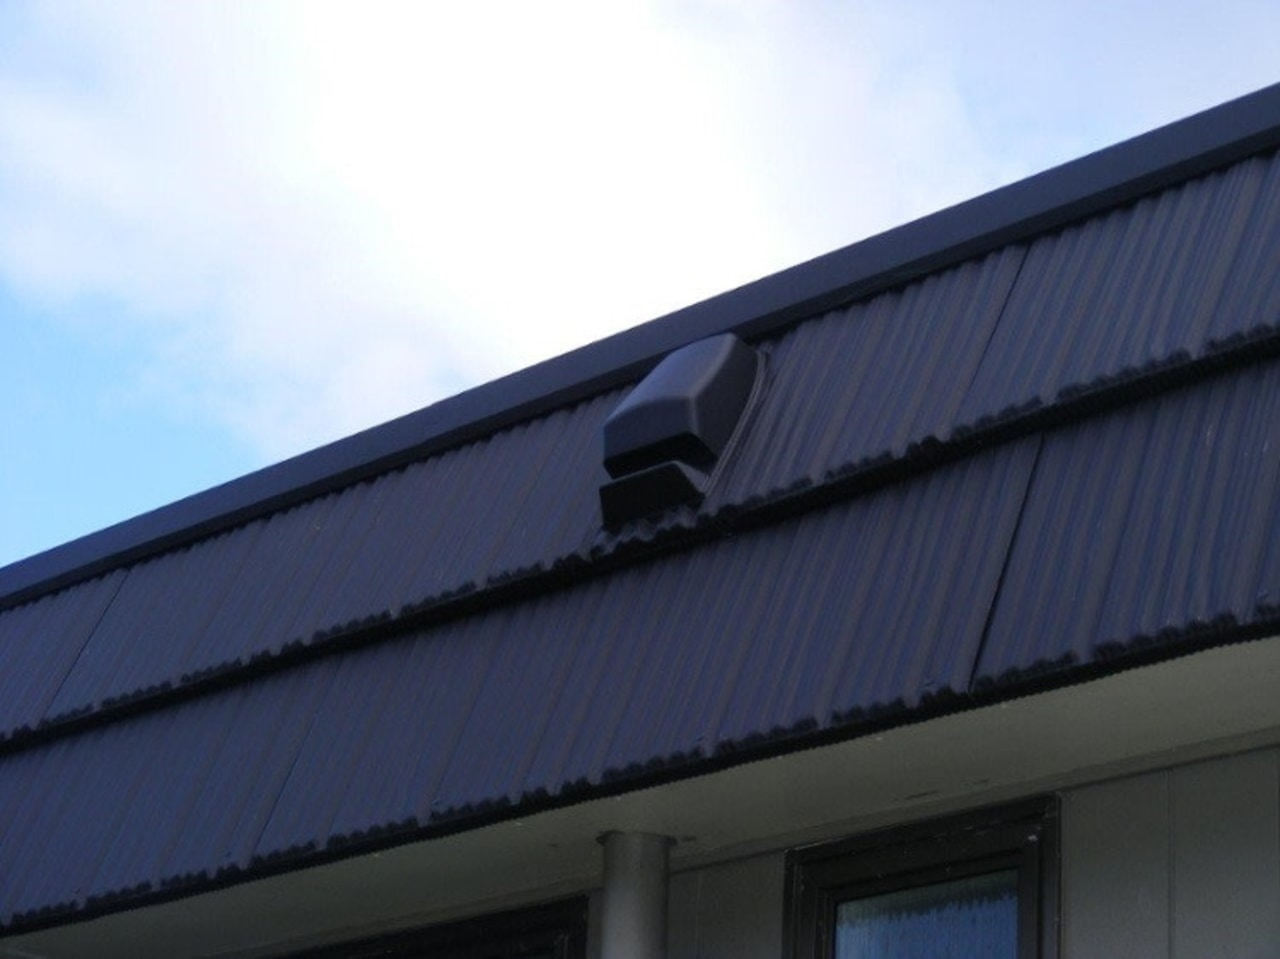 Ventilation is a vital element of any home angle, architecture, building, daylighting, facade, house, line, roof, siding, sky, window, blue, white